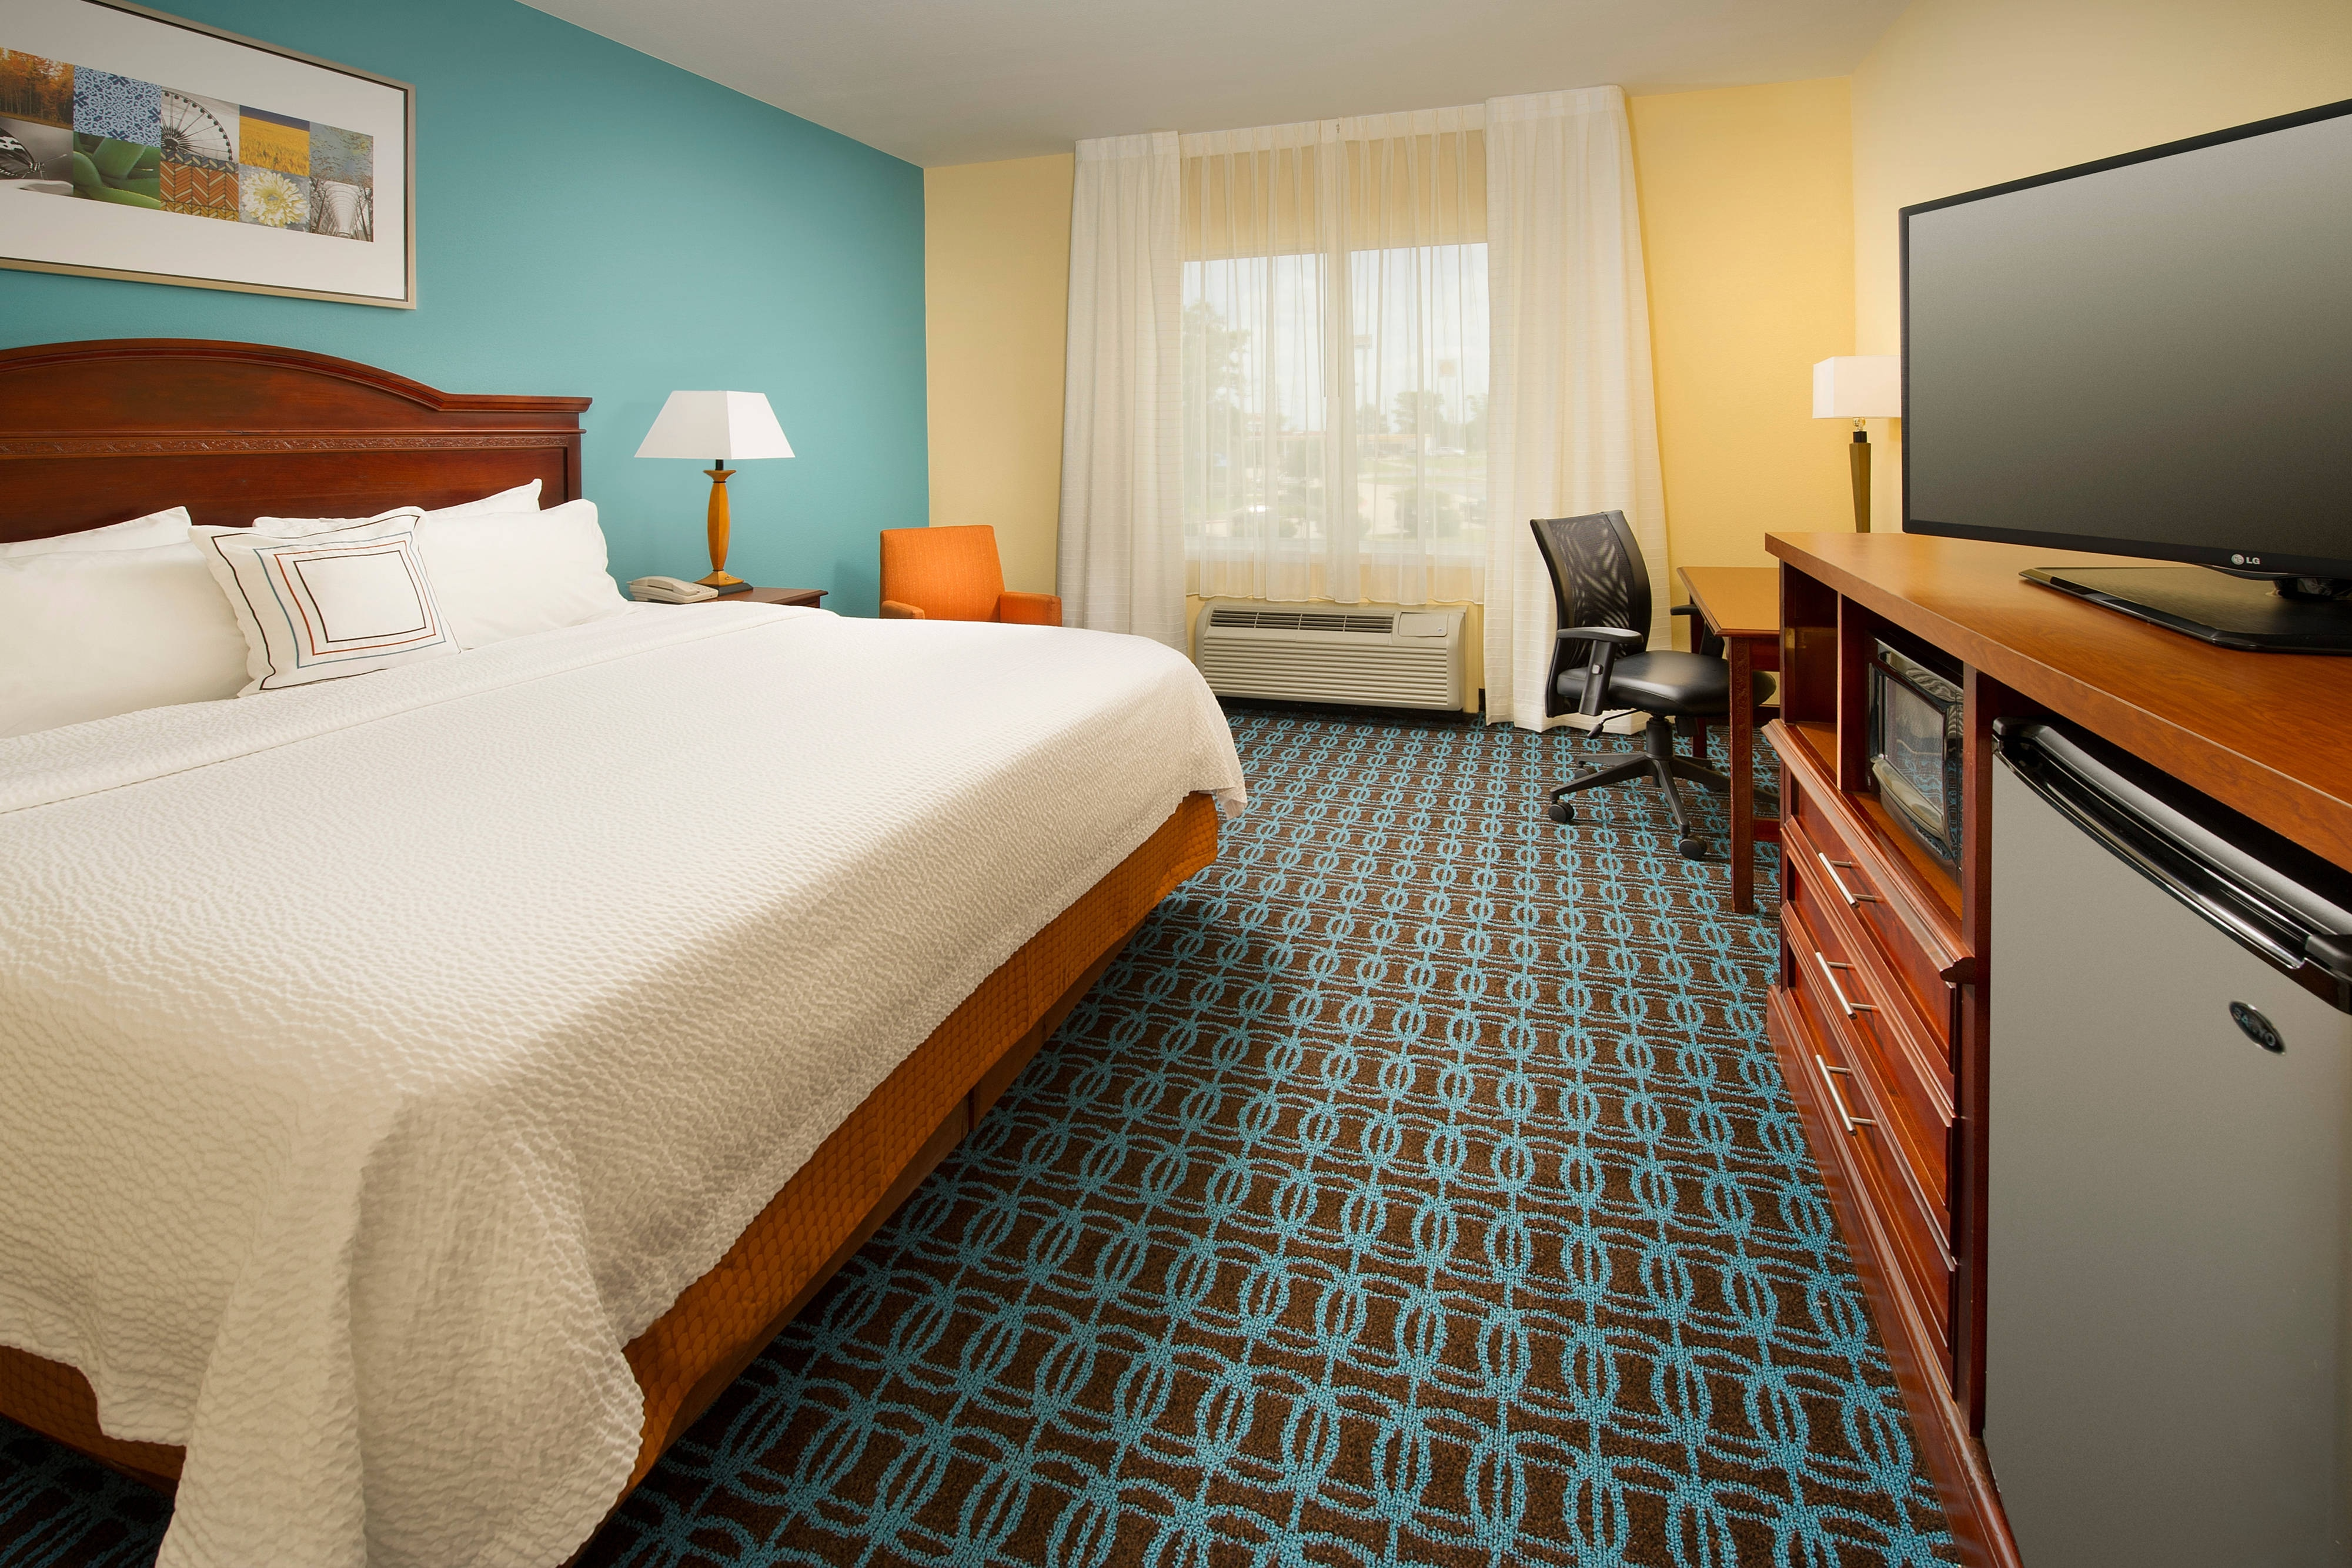 Waco Texas Hotel King Room